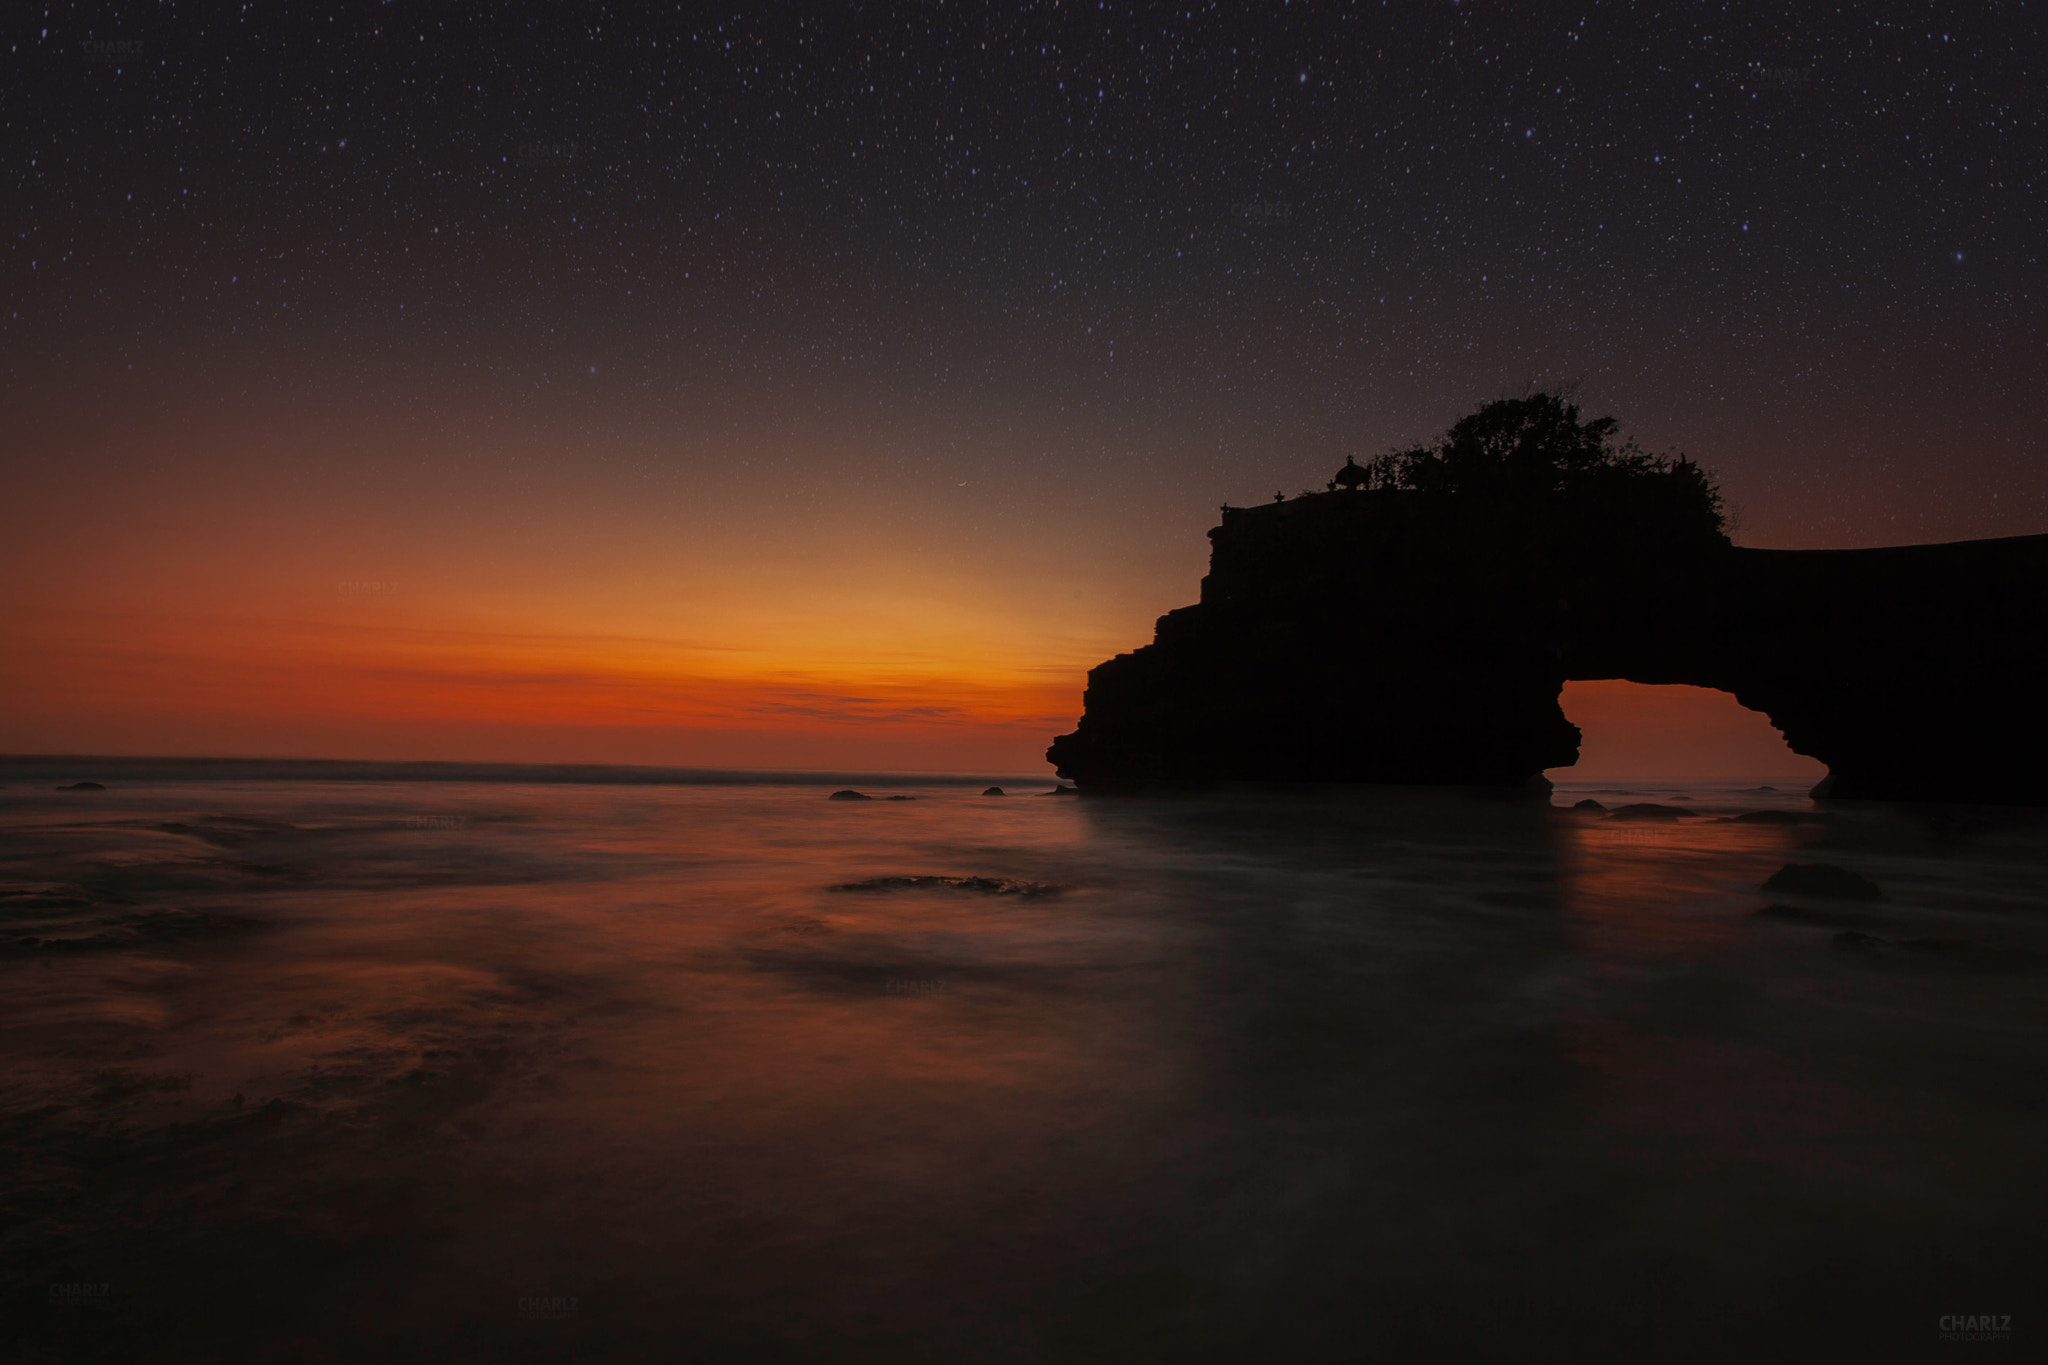 Photograph Sunset at Bali by Charlz Photography on 500px